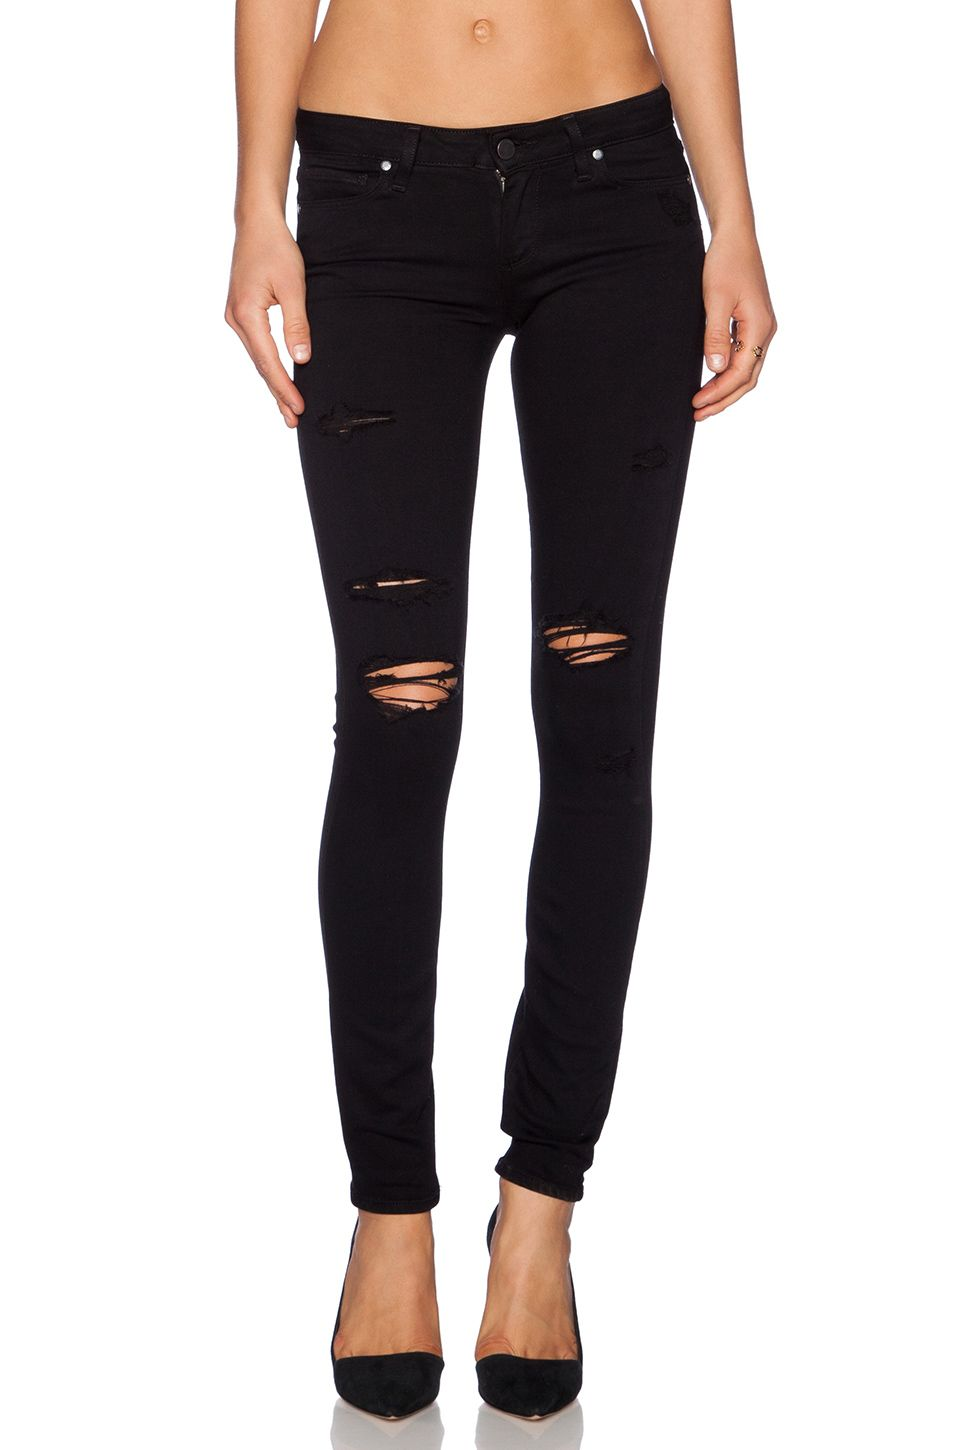 5c8c4f8d5ec0d Paige Denim / Verdugo Ultra Skinny in Black Shadow Destructed ...